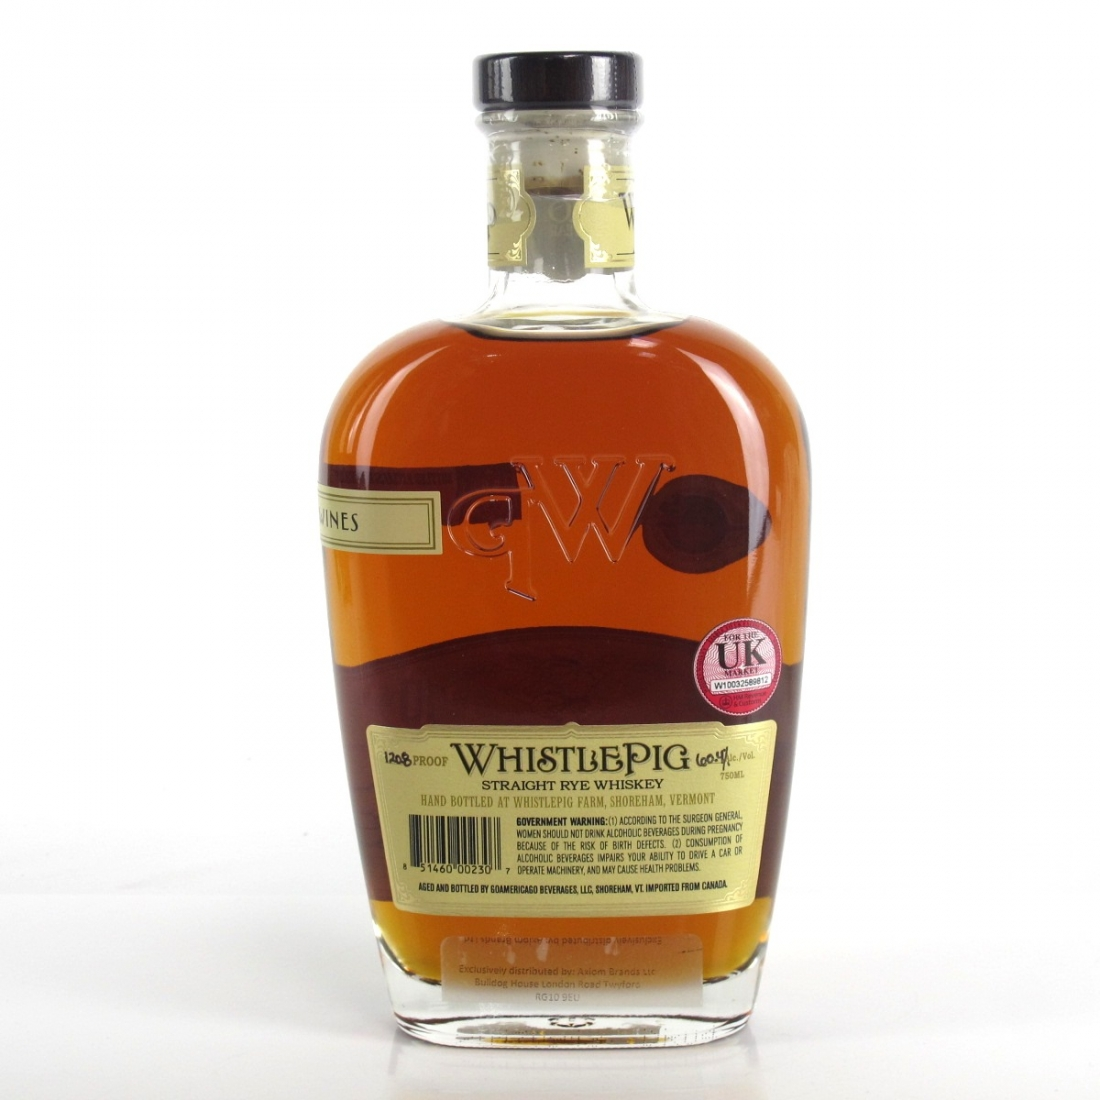 Whistlepig 10 Year Old Single Barrel Straight Rye / Hedonism Wines